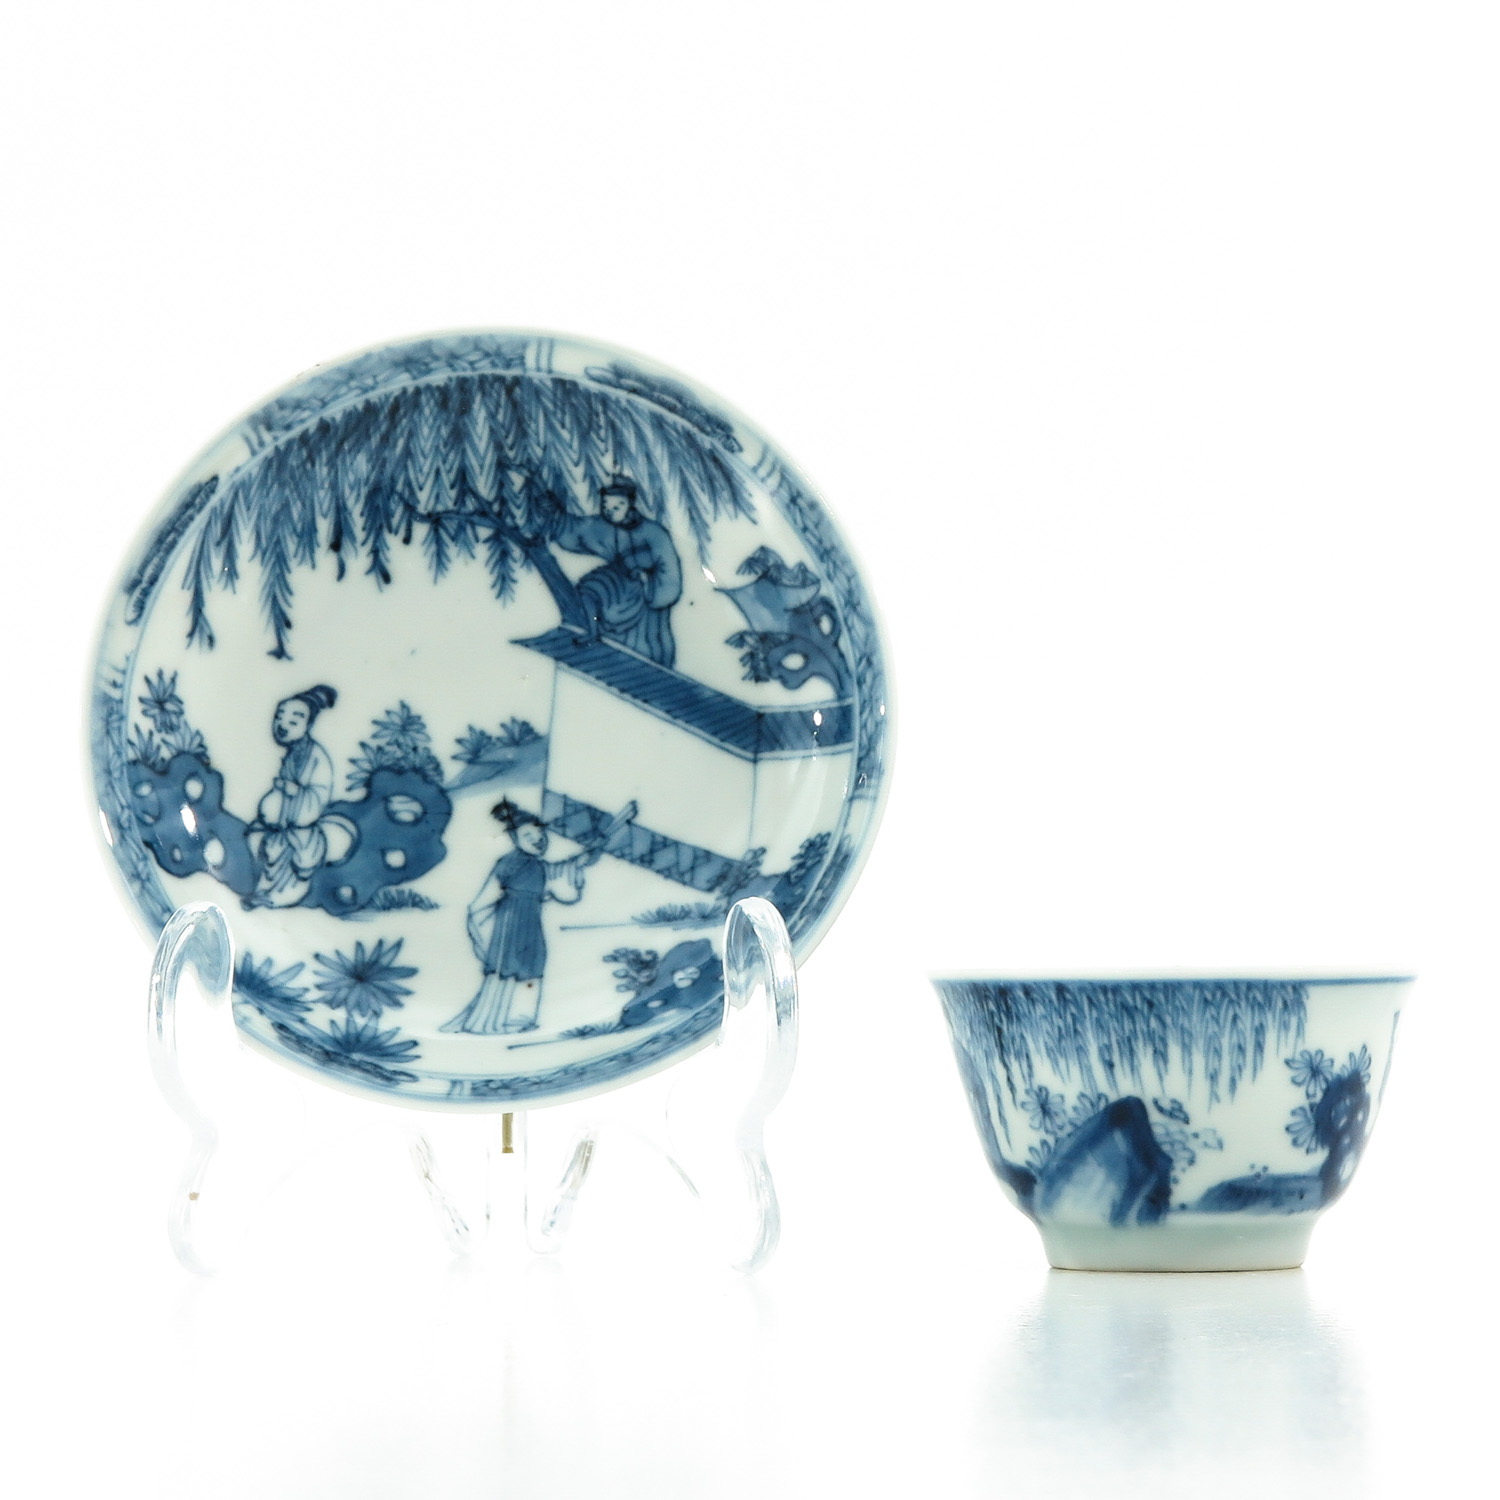 A Blue and White Cup and Saucer - Image 2 of 10